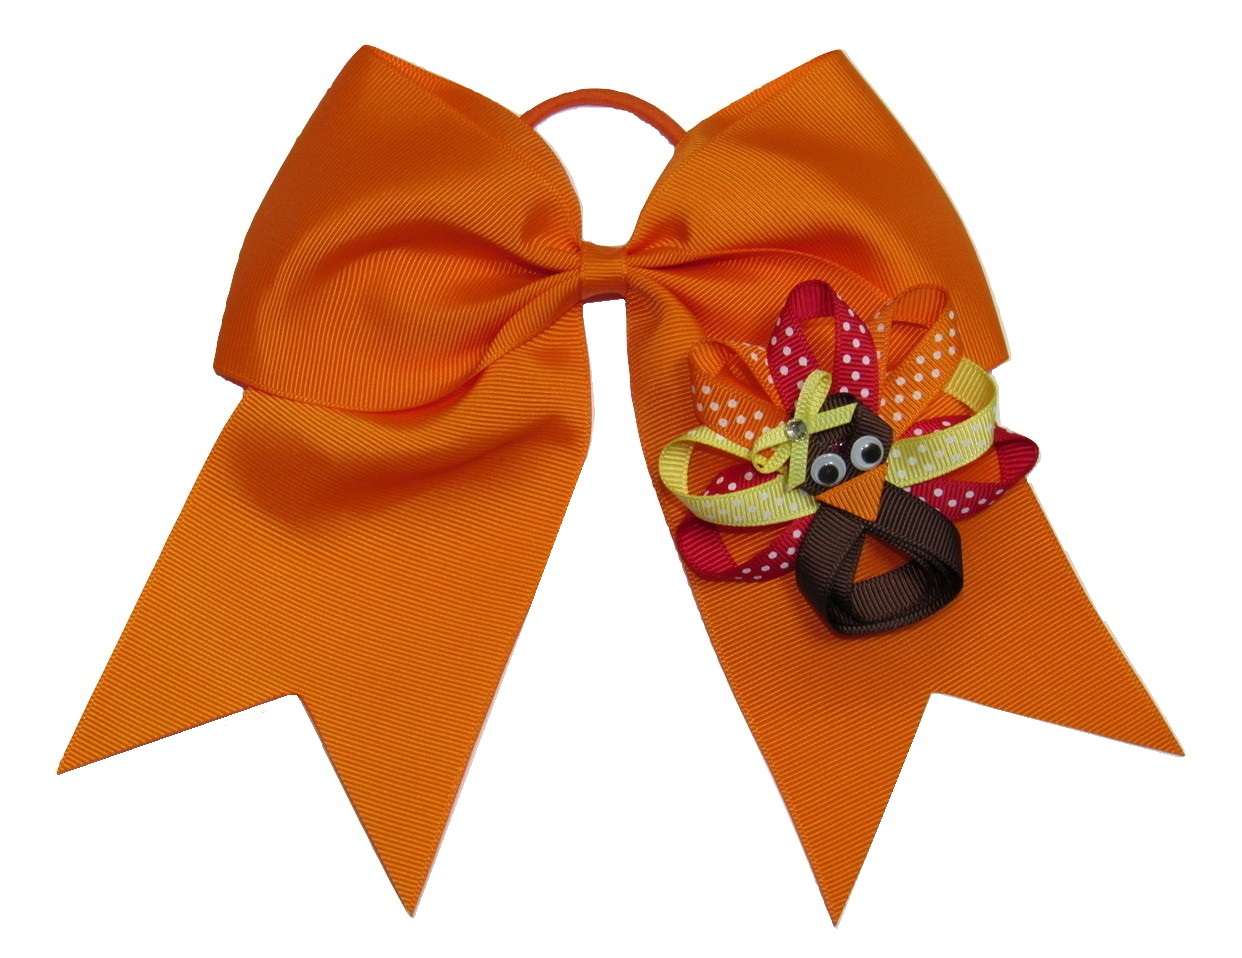 "NEW ""THANKSGIVING TURKEY"" Cheer Bow Pony Tail 3 Inch Ribbon Girls Cheerleading Dance Practice Football Games Fall Festival"